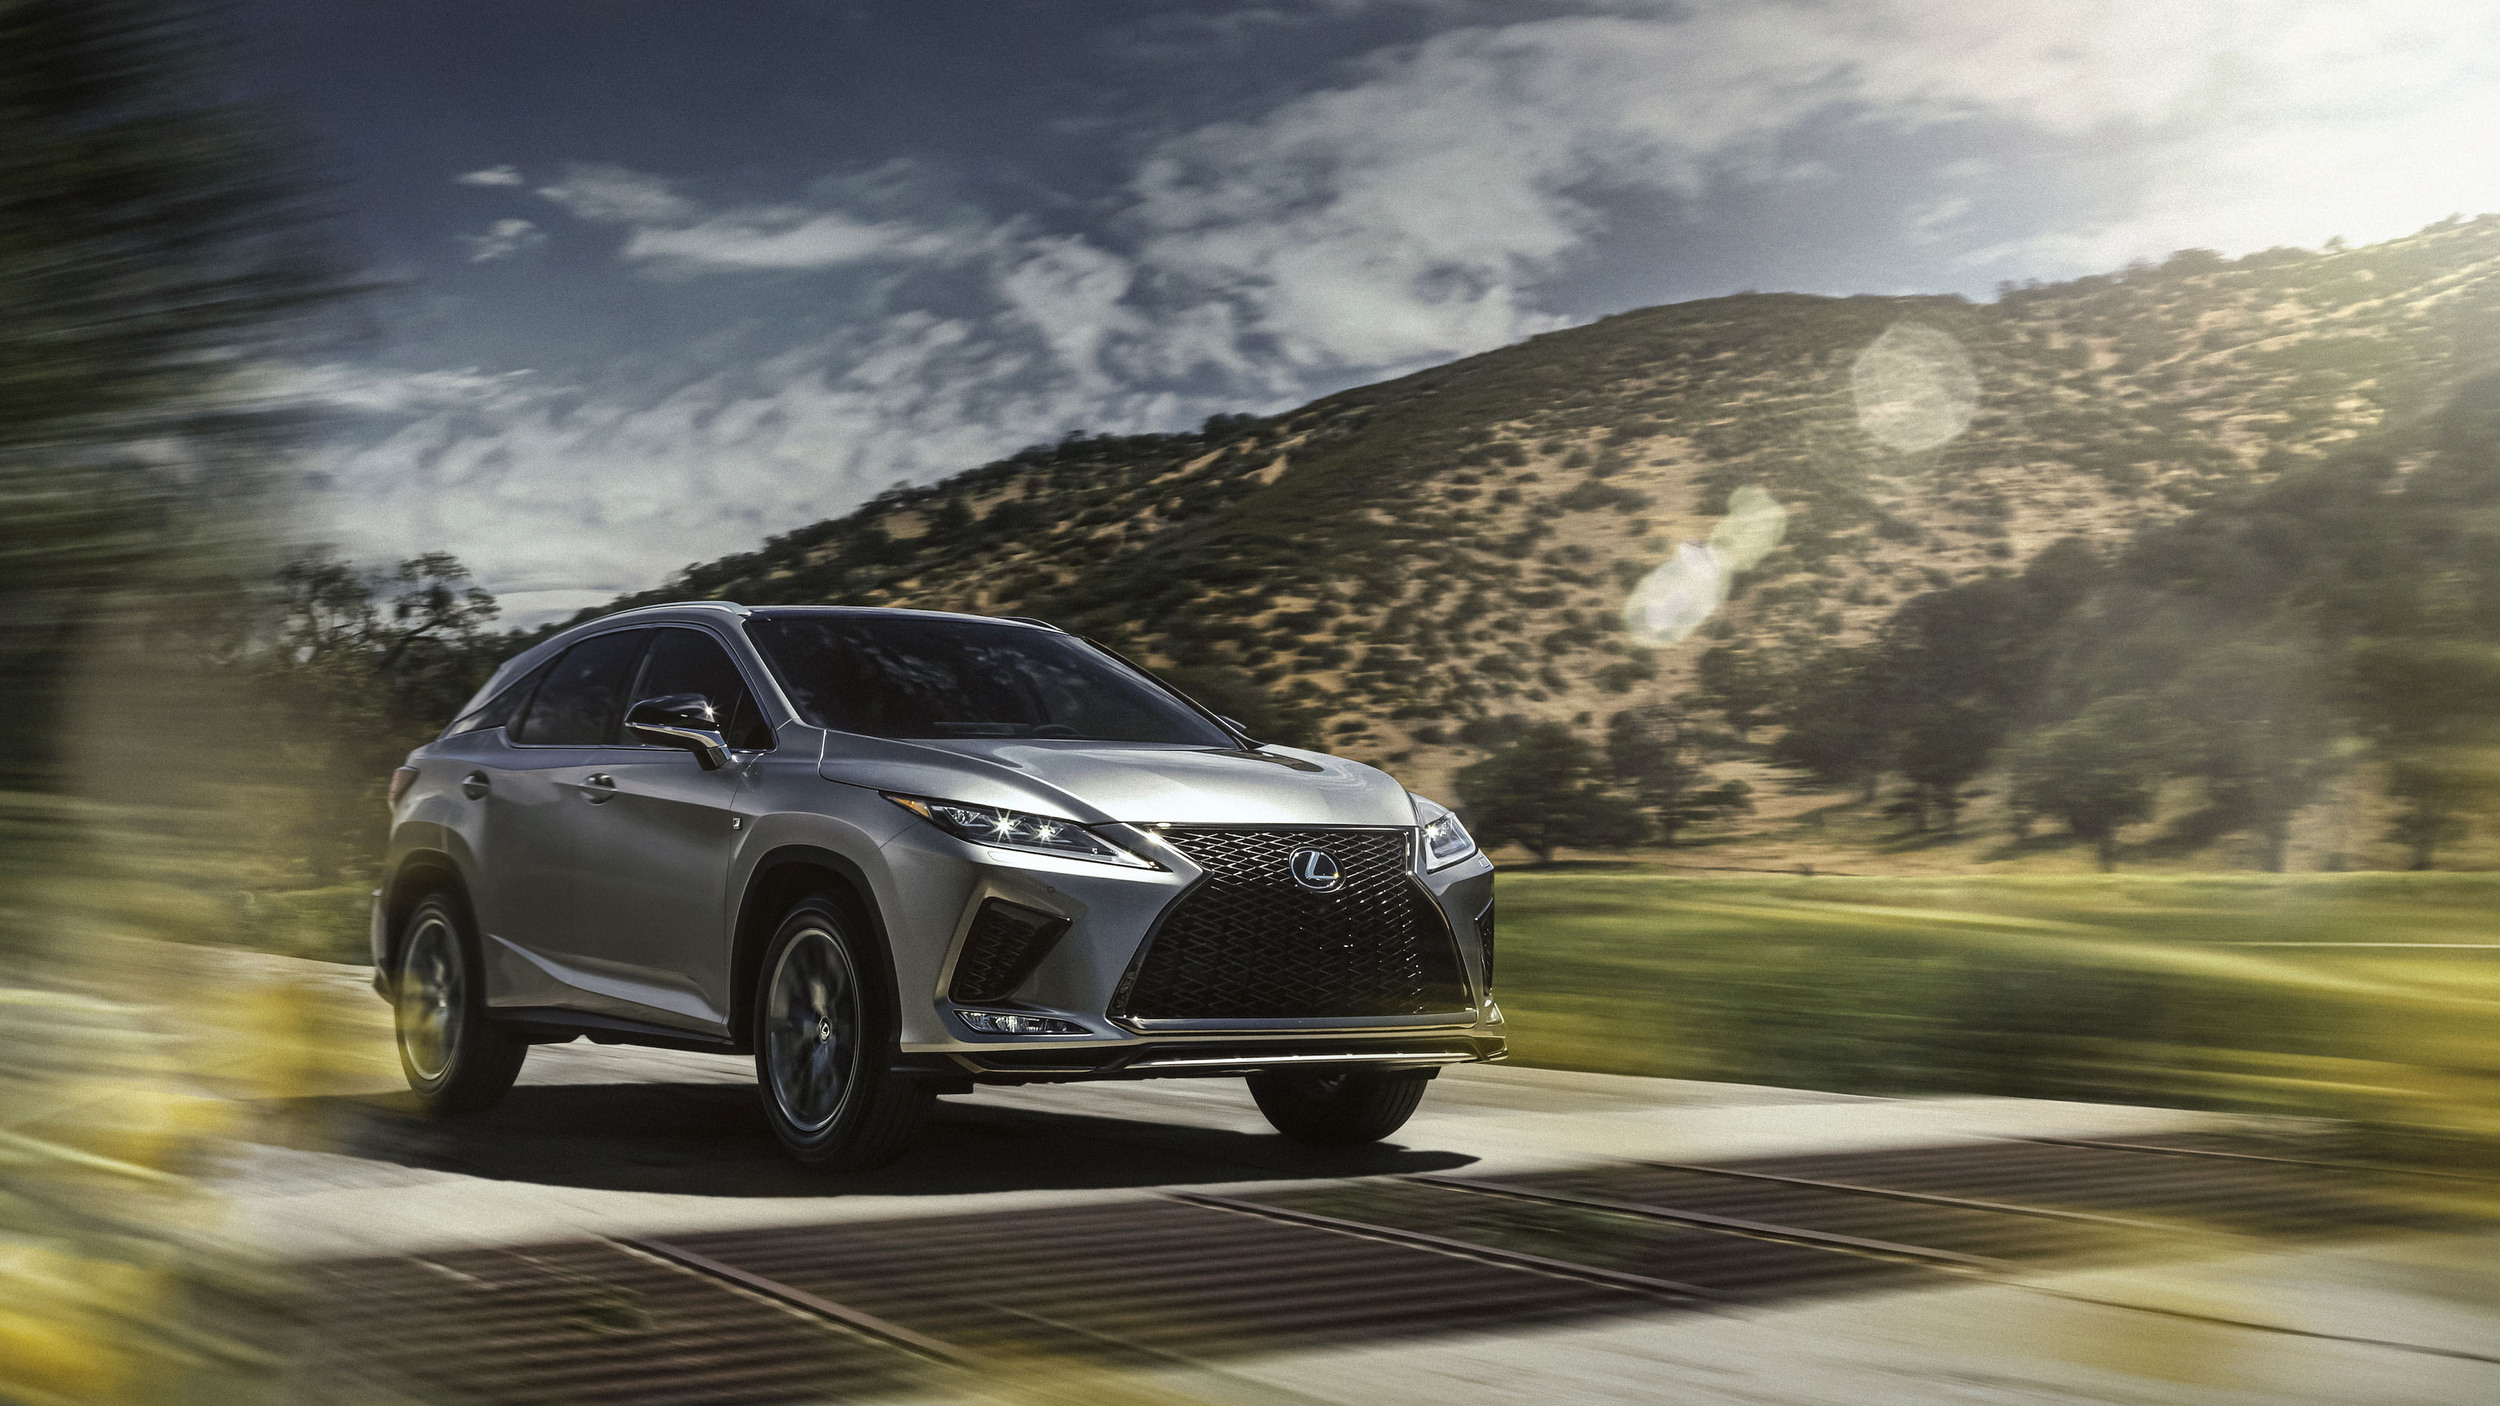 Pre Owned Lexus >> 2020 Lexus RX350 and RX450h updated with new styling, improved tech | Autoblog